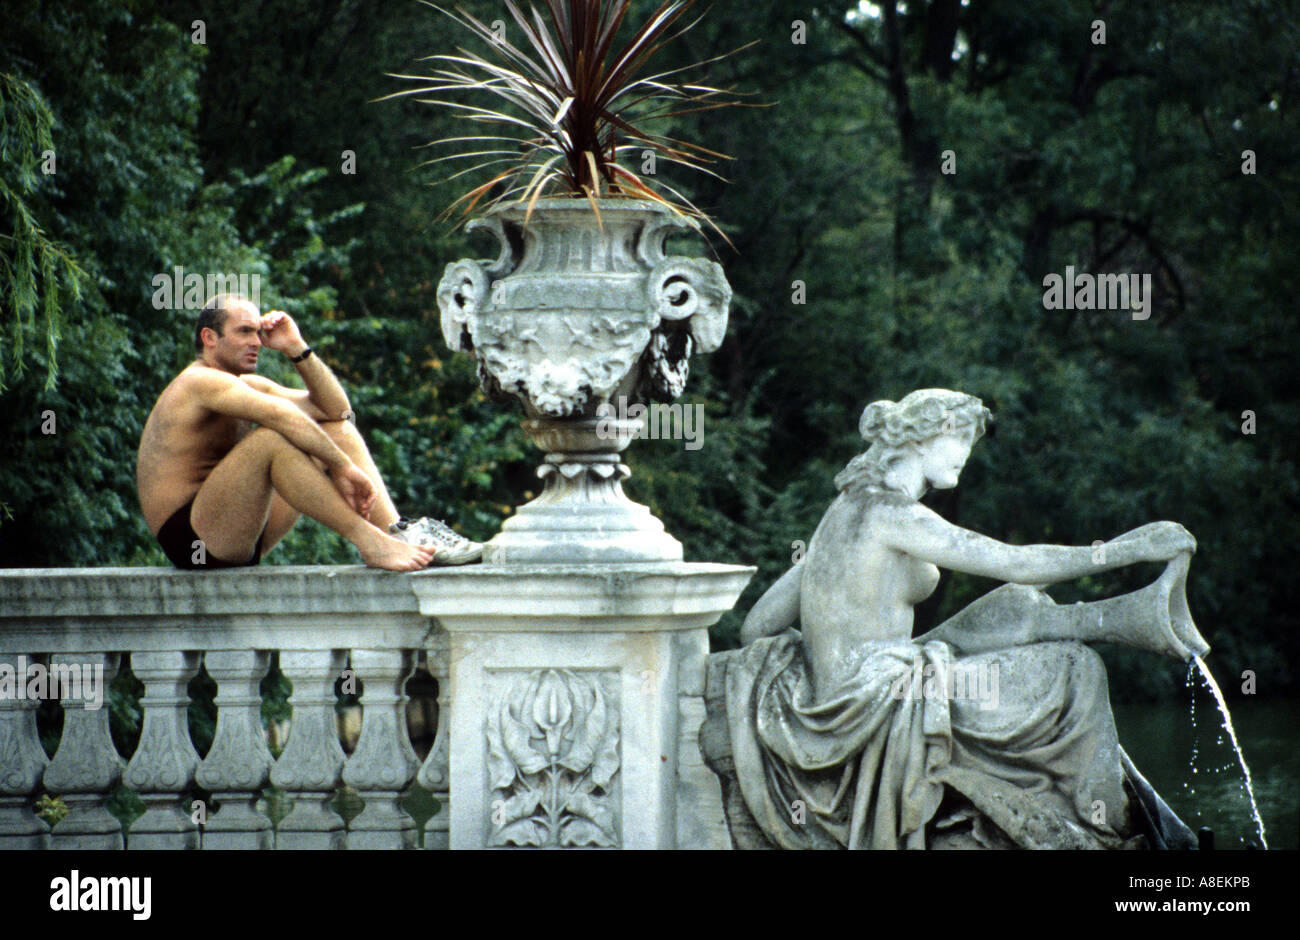 Male sunbather strikes matching pose with statue, Regents Park, London - Stock Image